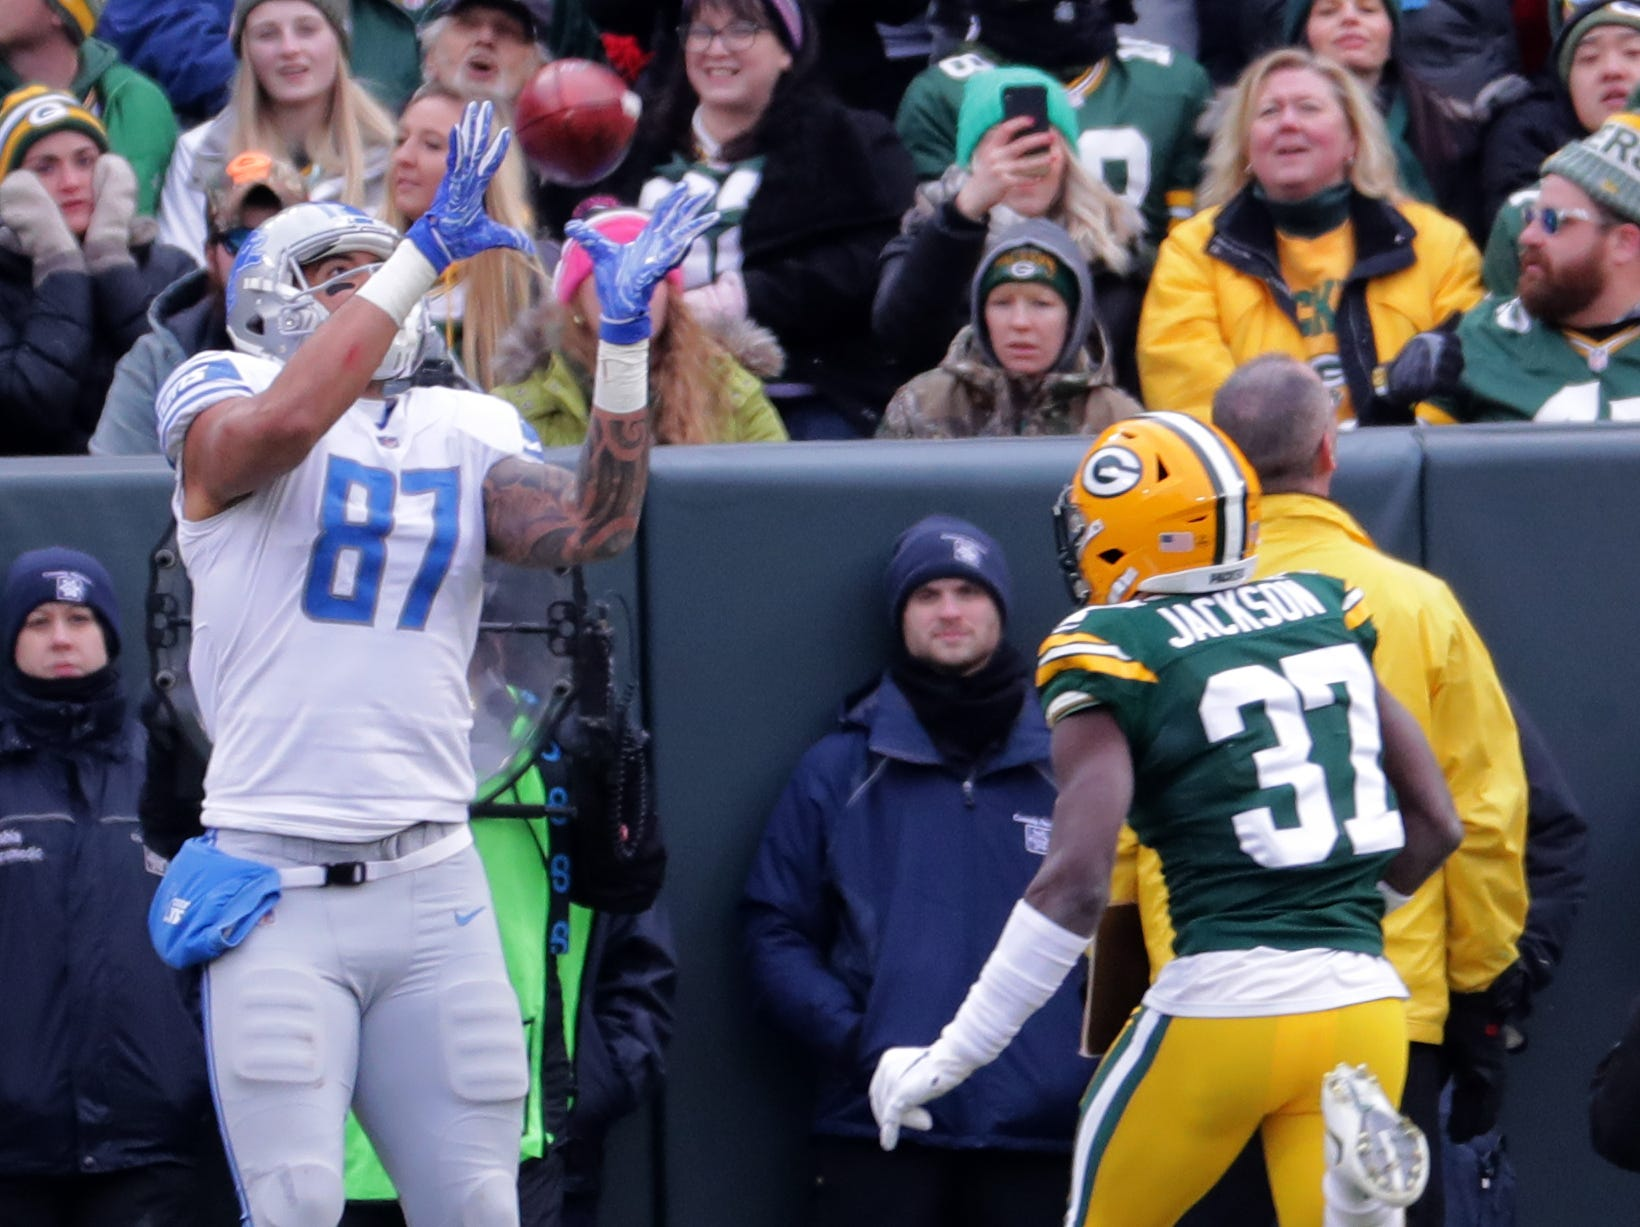 Detroit Lions tight end Levine Toilolo (87) scores a touchdown reception on a fake field goal while being covered by Green Bay Packers cornerback Josh Jackson (37) during the second  quarter of their game Sunday, December 30, 2018 at Lambeau Field in Green Bay, Wis. The Detroit Lions beat the Green Bay Packers 31-0.  MARK HOFFMAN/MILWAUKEE JOURNAL SENTINEL